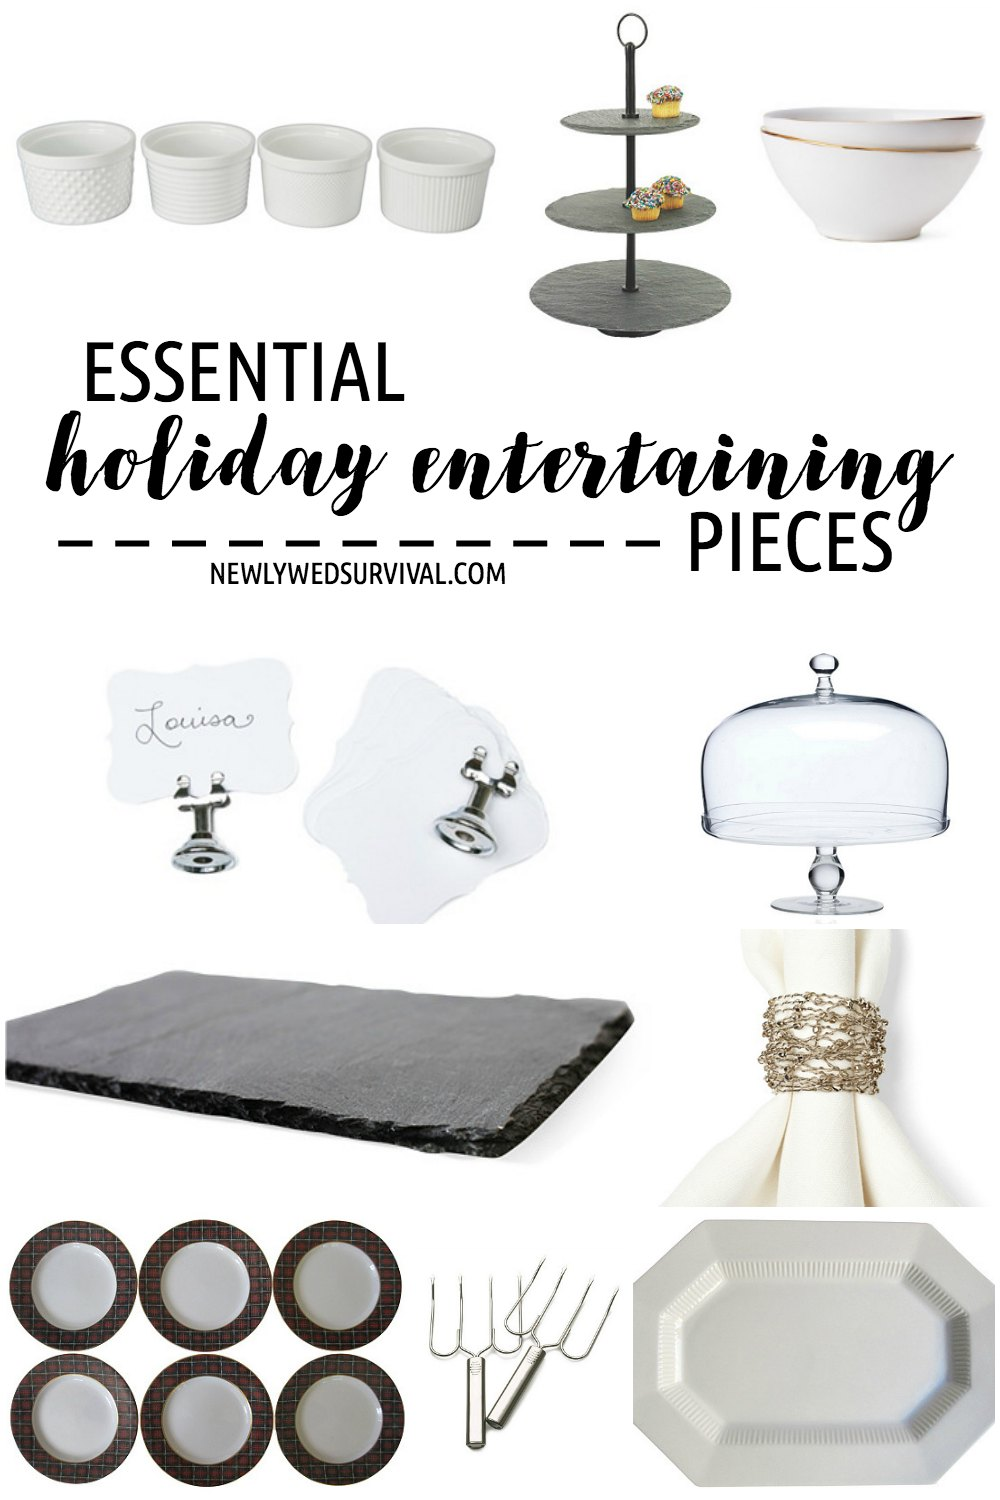 Essential Holiday Entertaining Pieces